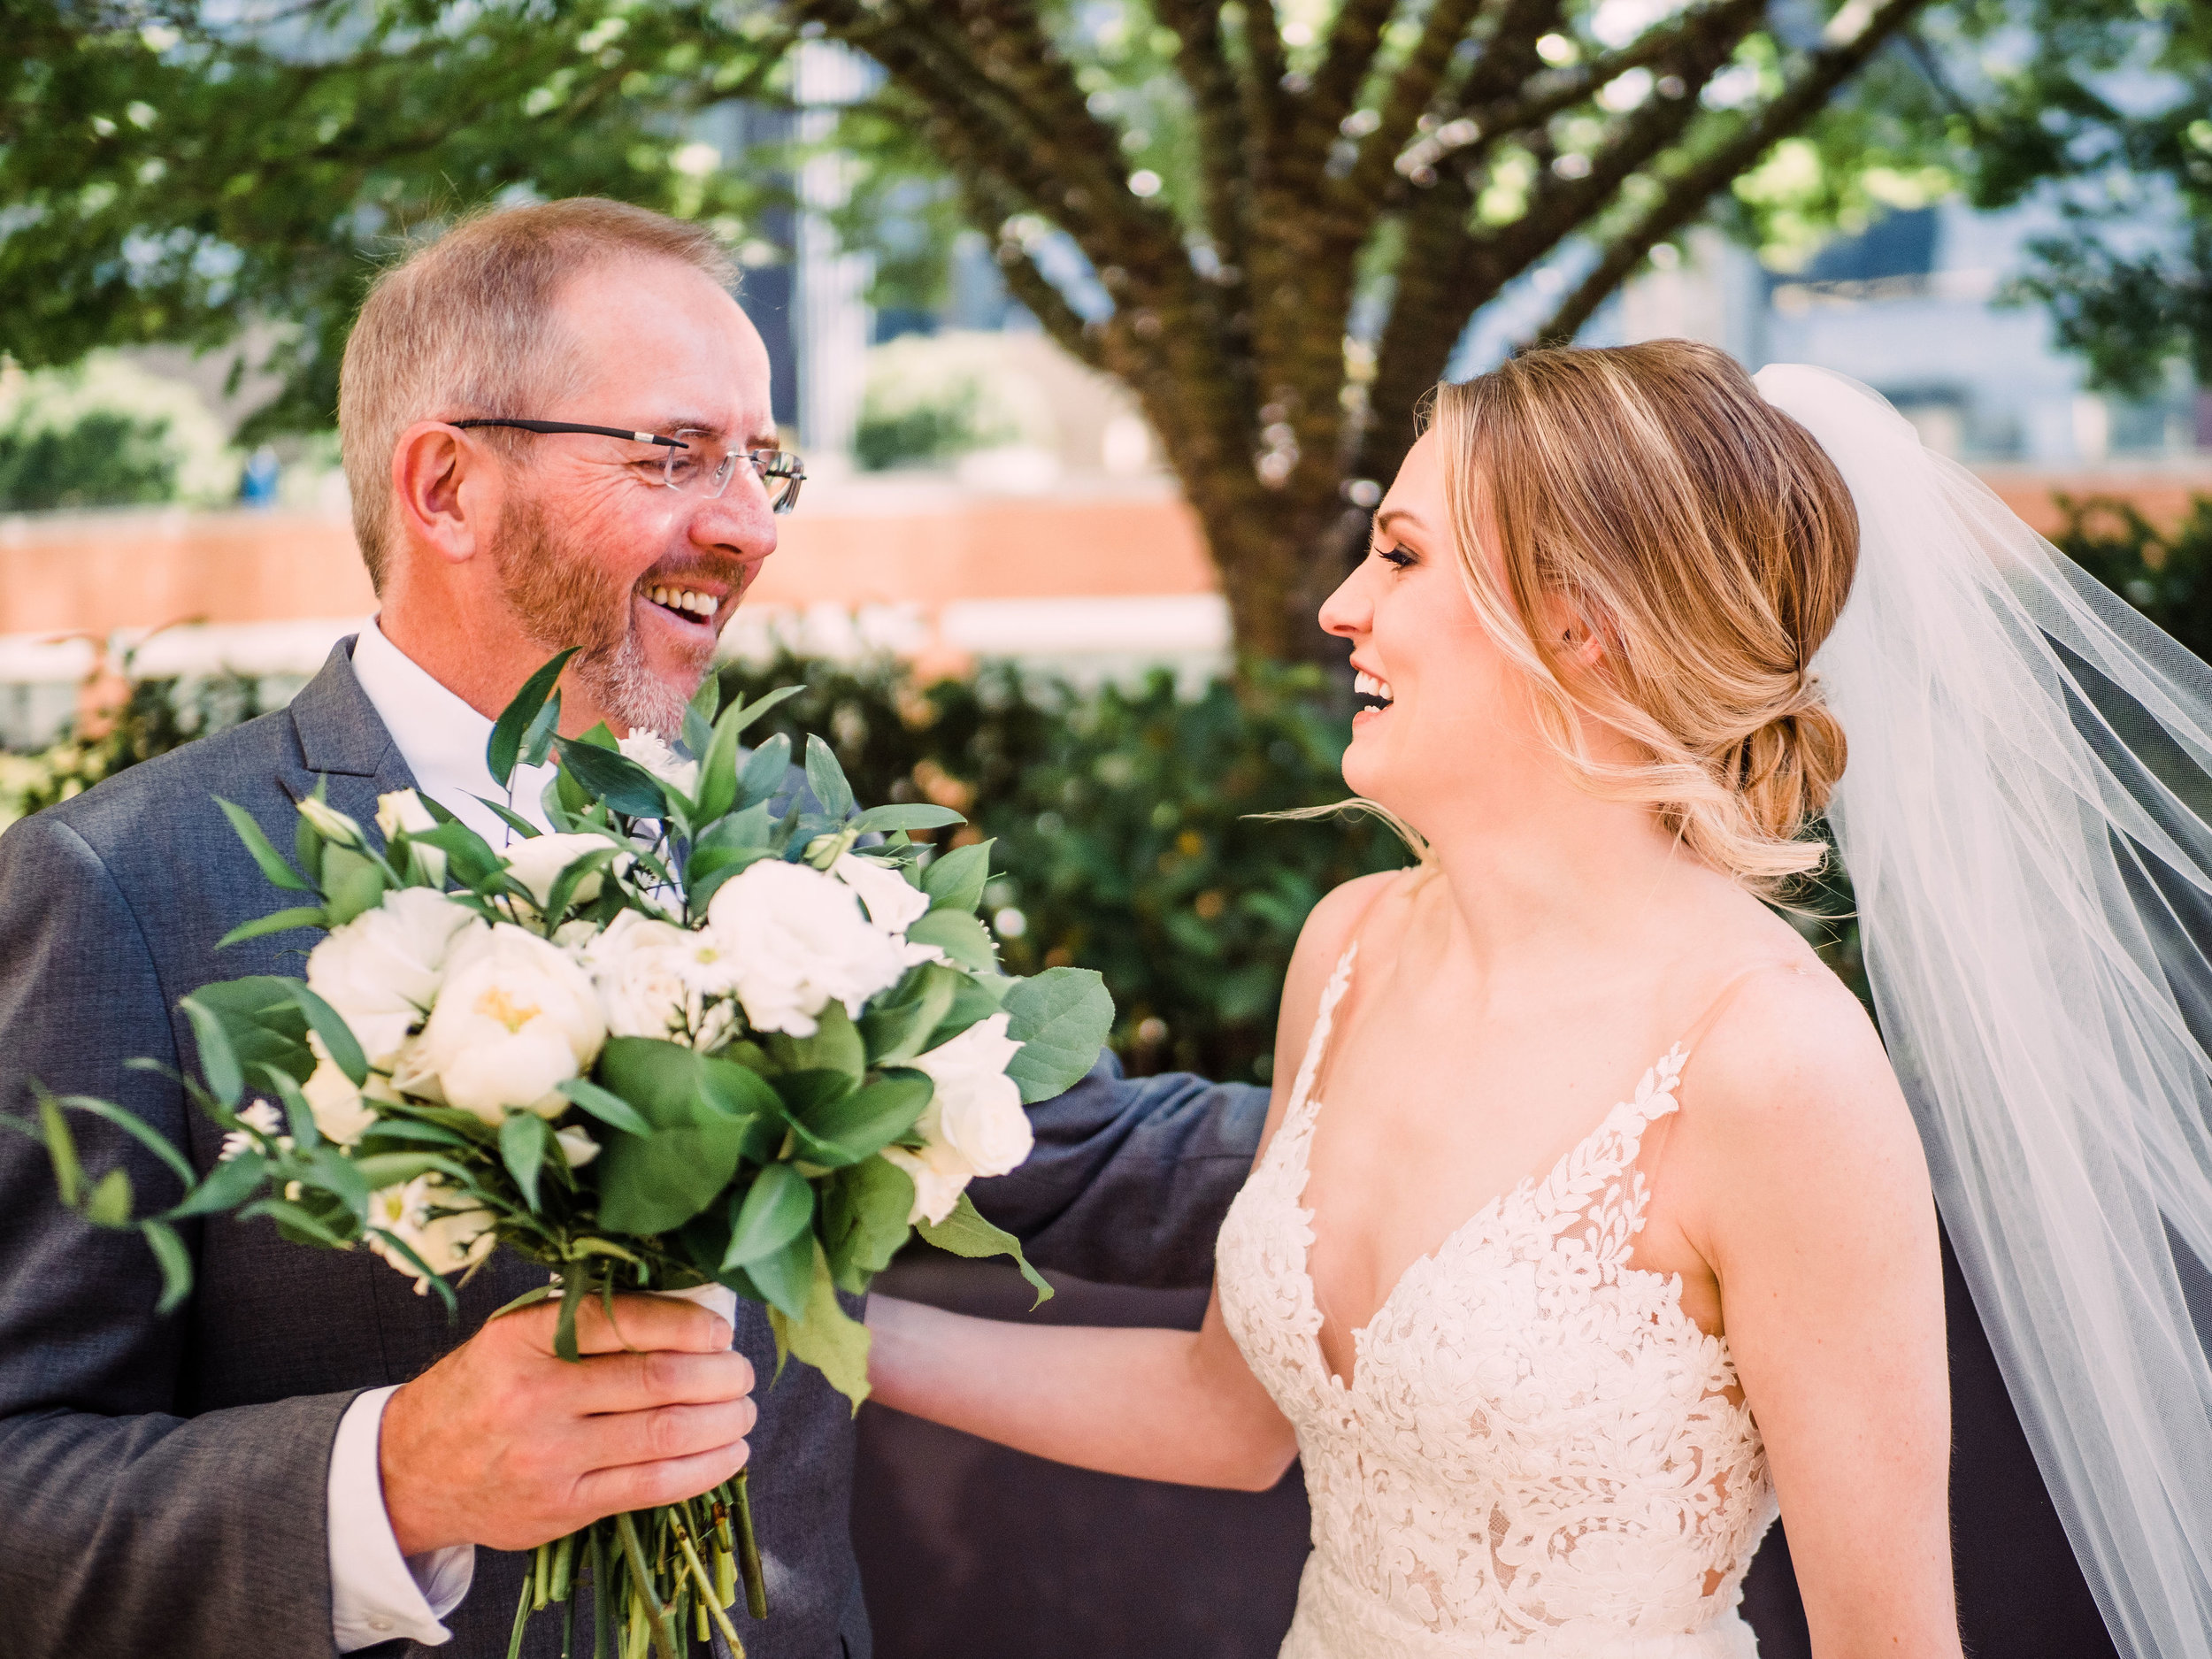 Sara's photographer suggested having her father show her her bouquet for the first time and I though that was such a cute idea!